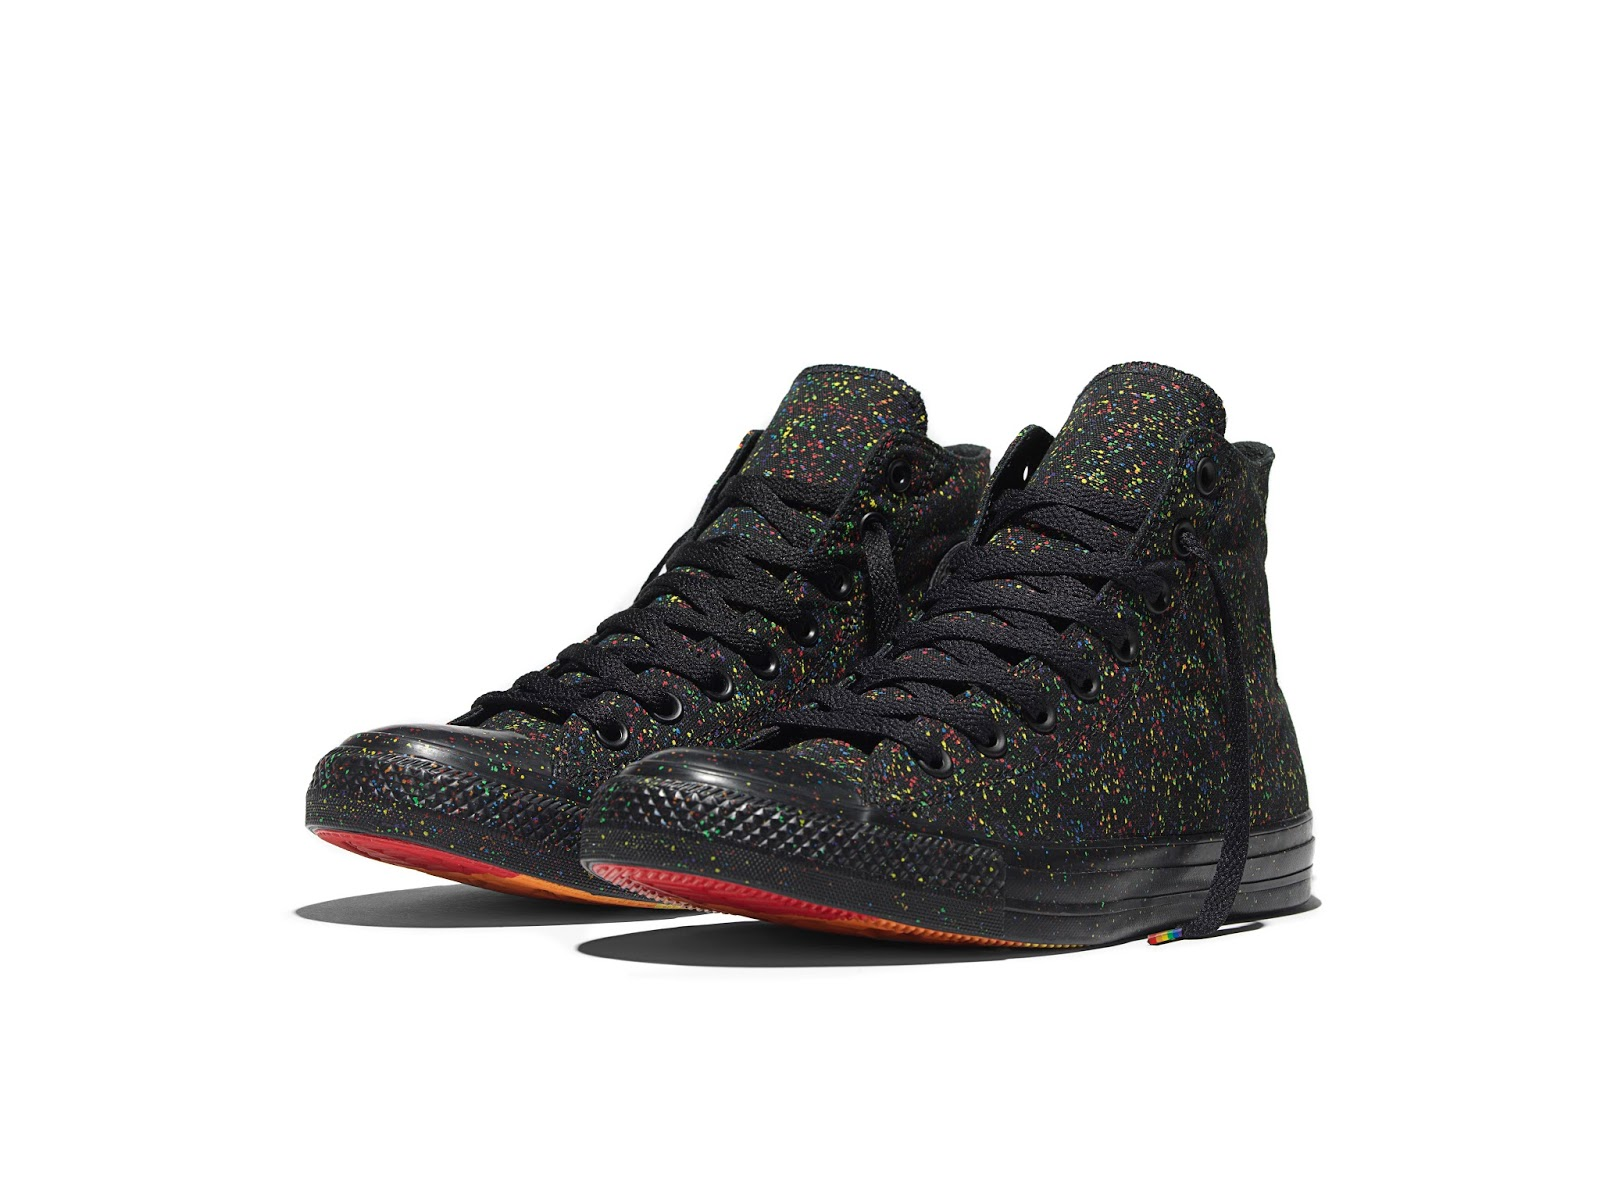 91ff2edf15cb Launching this spring on the classic Converse Chuck Taylor hi and ox  silhouettes